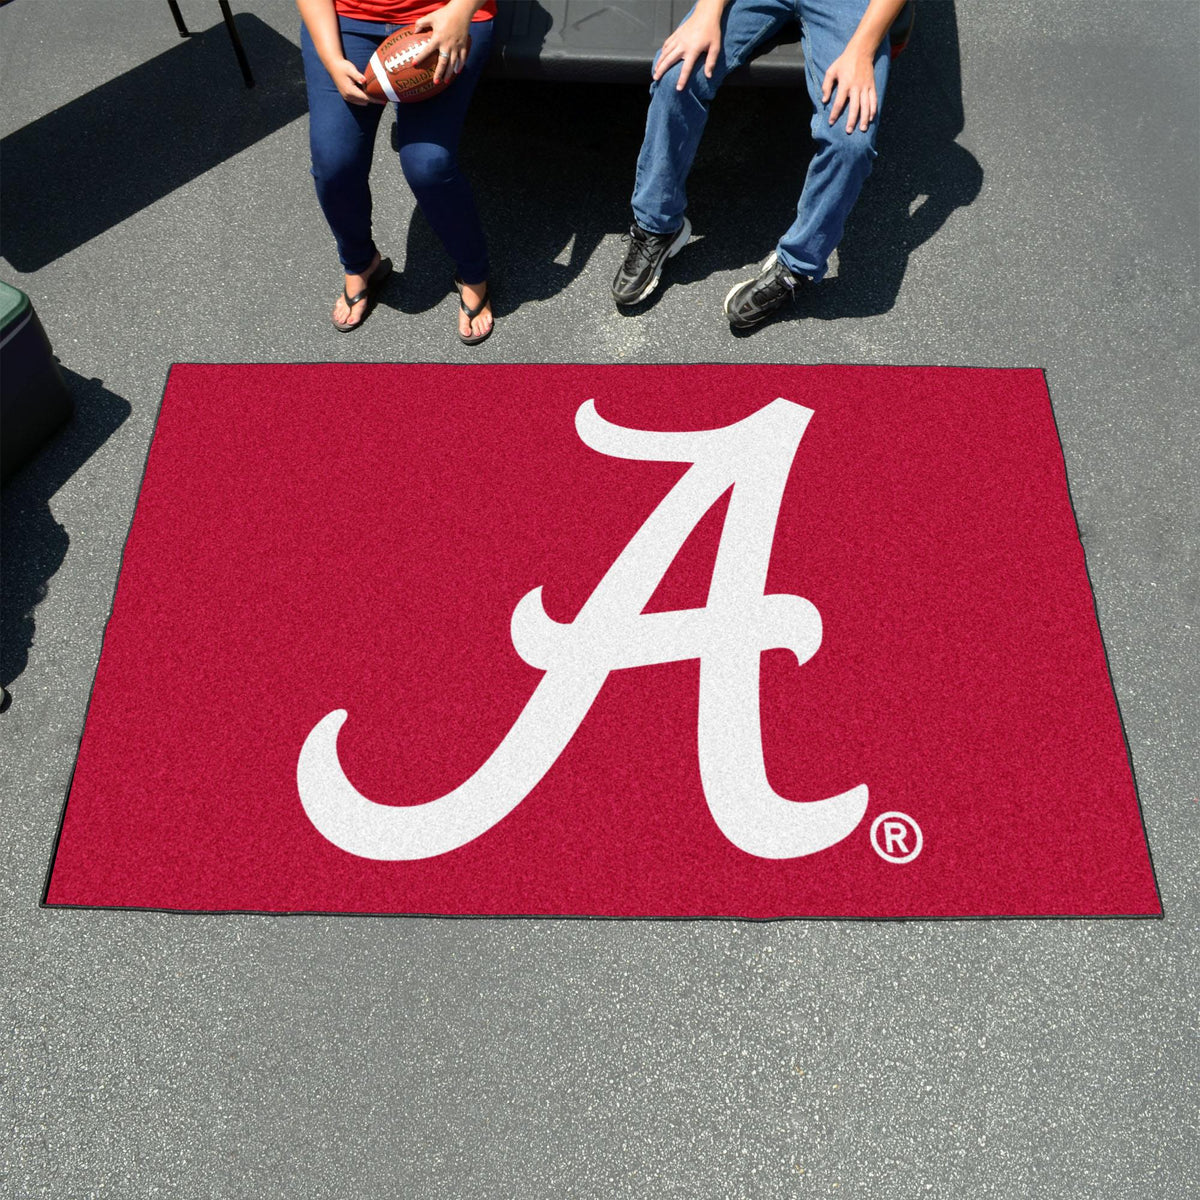 Collegiate - Ulti-Mat: A - L Collegiate Mats, Rectangular Mats, Ulti-Mat, Collegiate, Home Fan Mats Alabama 2